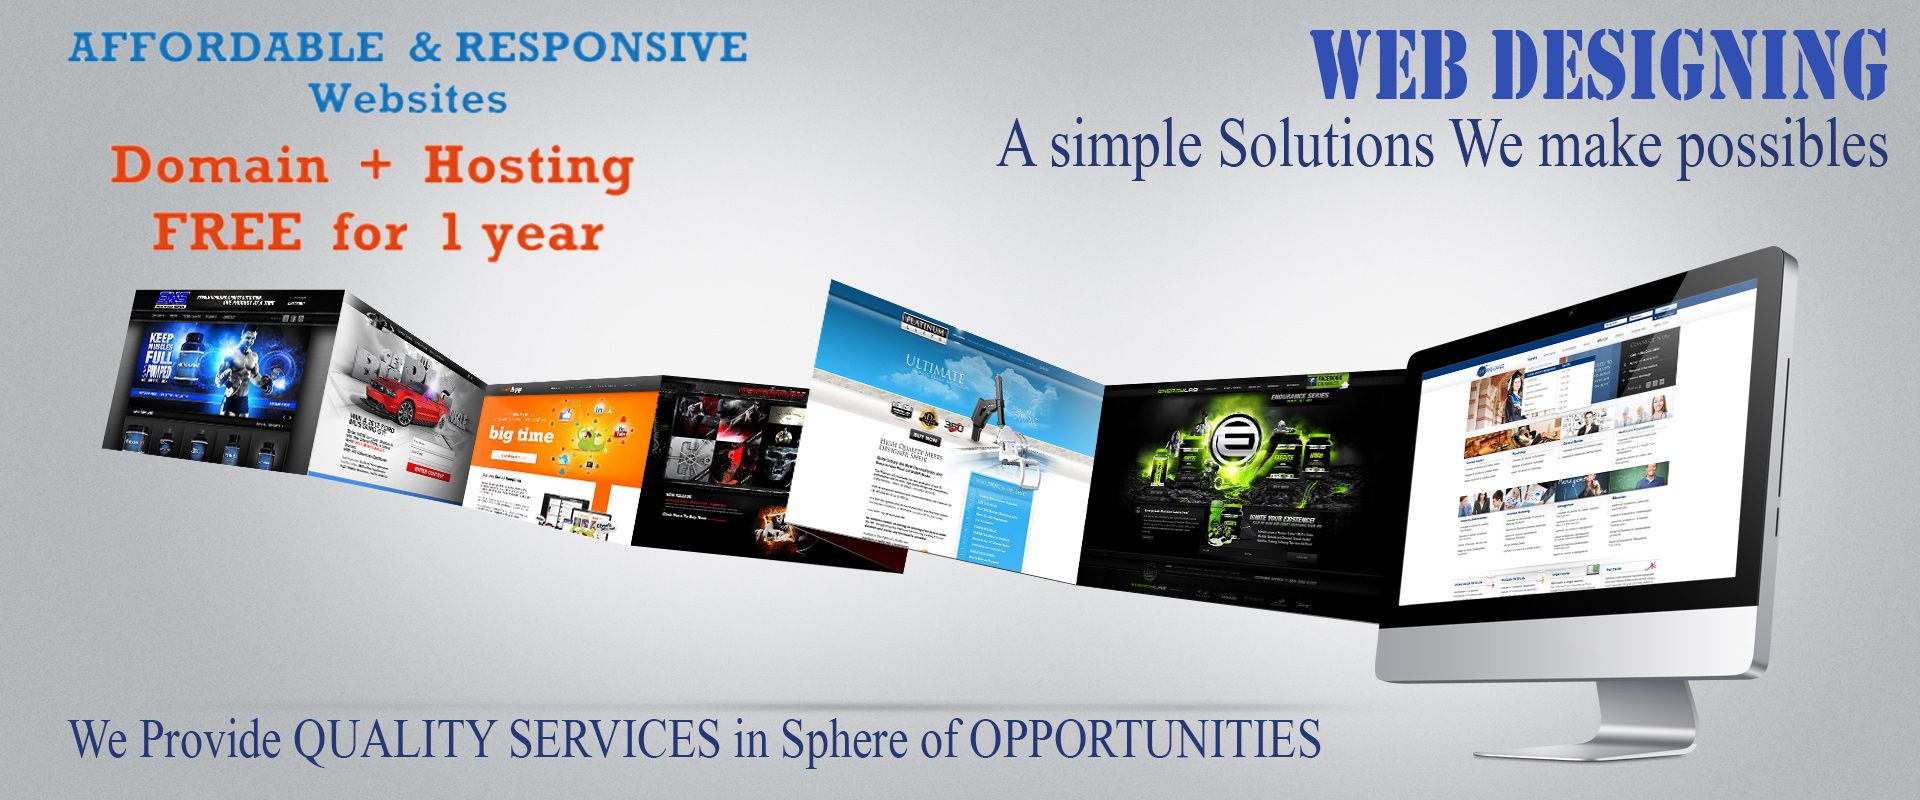 Website Design Rbs Reinvented With A Purpose Quickly Build Responsive Websites Web Development Design Creative Web Design